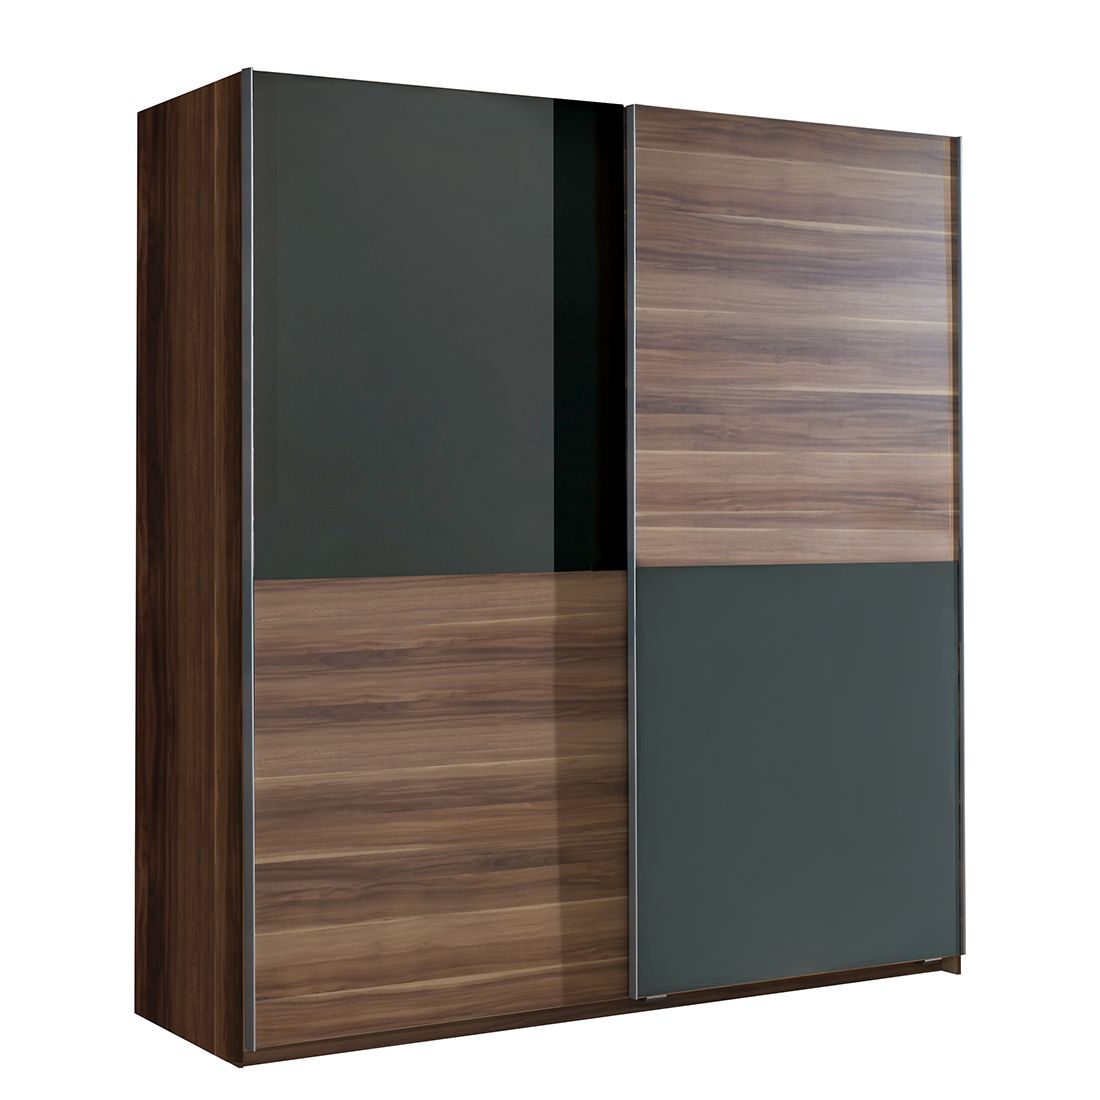 schwebet renschrank clay nussbaum anthrazit schrankbreite 135 cm 2 t rig. Black Bedroom Furniture Sets. Home Design Ideas